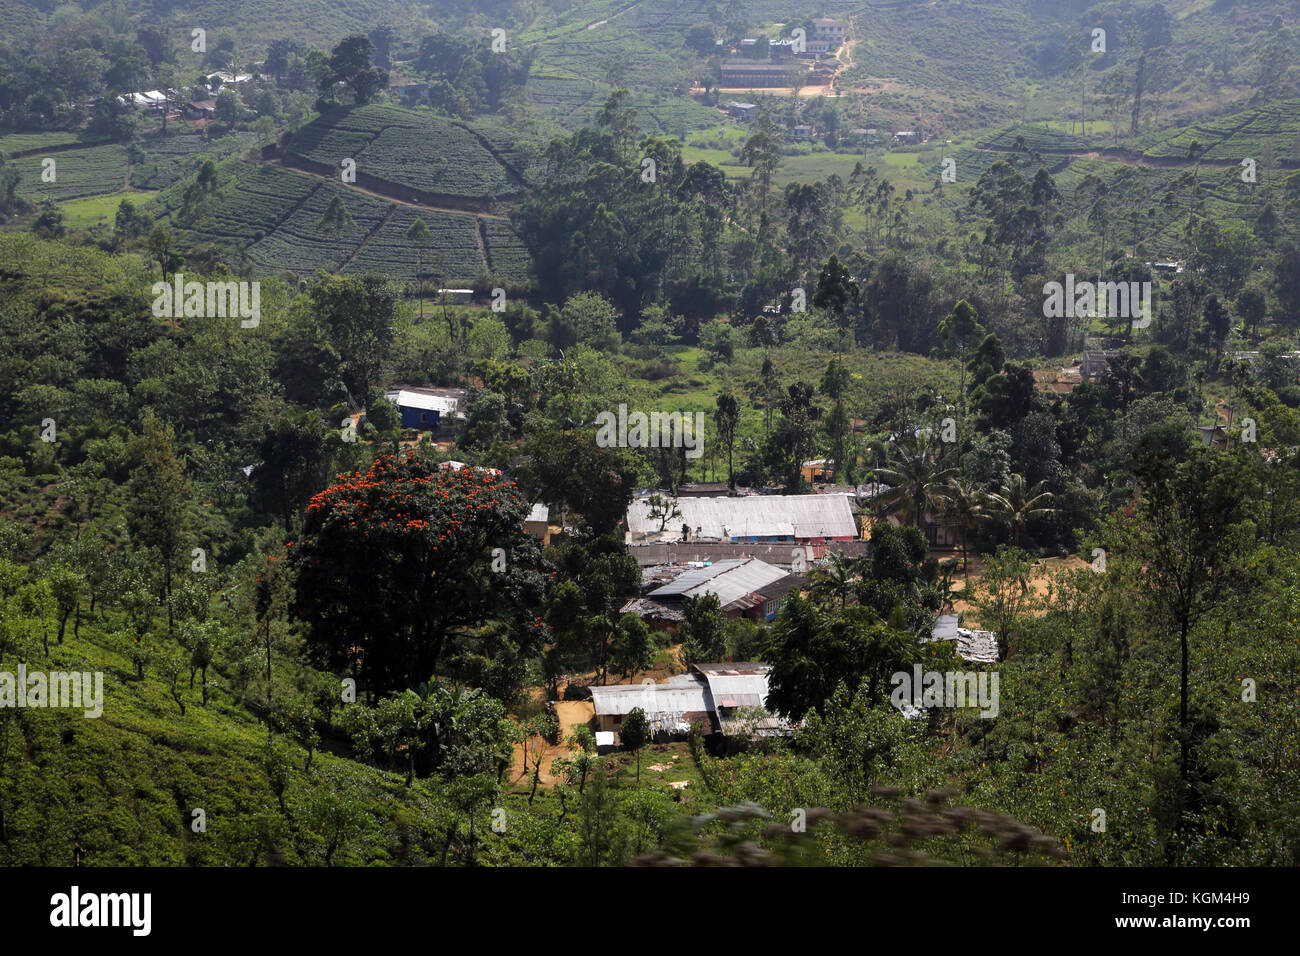 Hill Country Central Province Sri Lanka Tea Pickers Cottages in Village - Stock Image